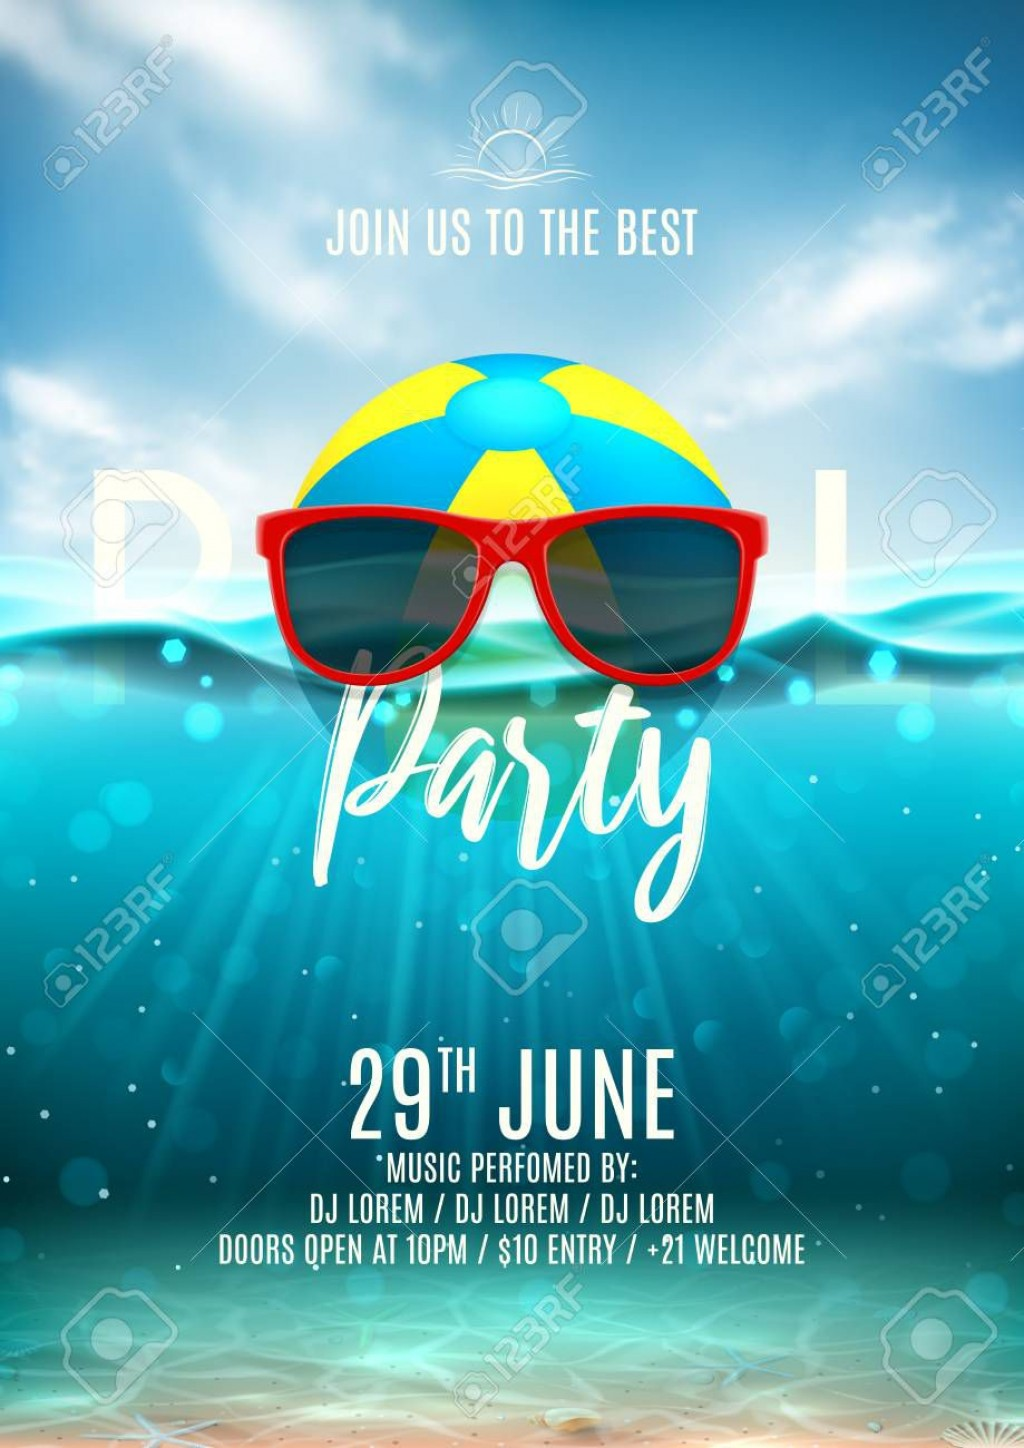 003 Unusual Pool Party Flyer Template Free High Definition  Photoshop PsdLarge